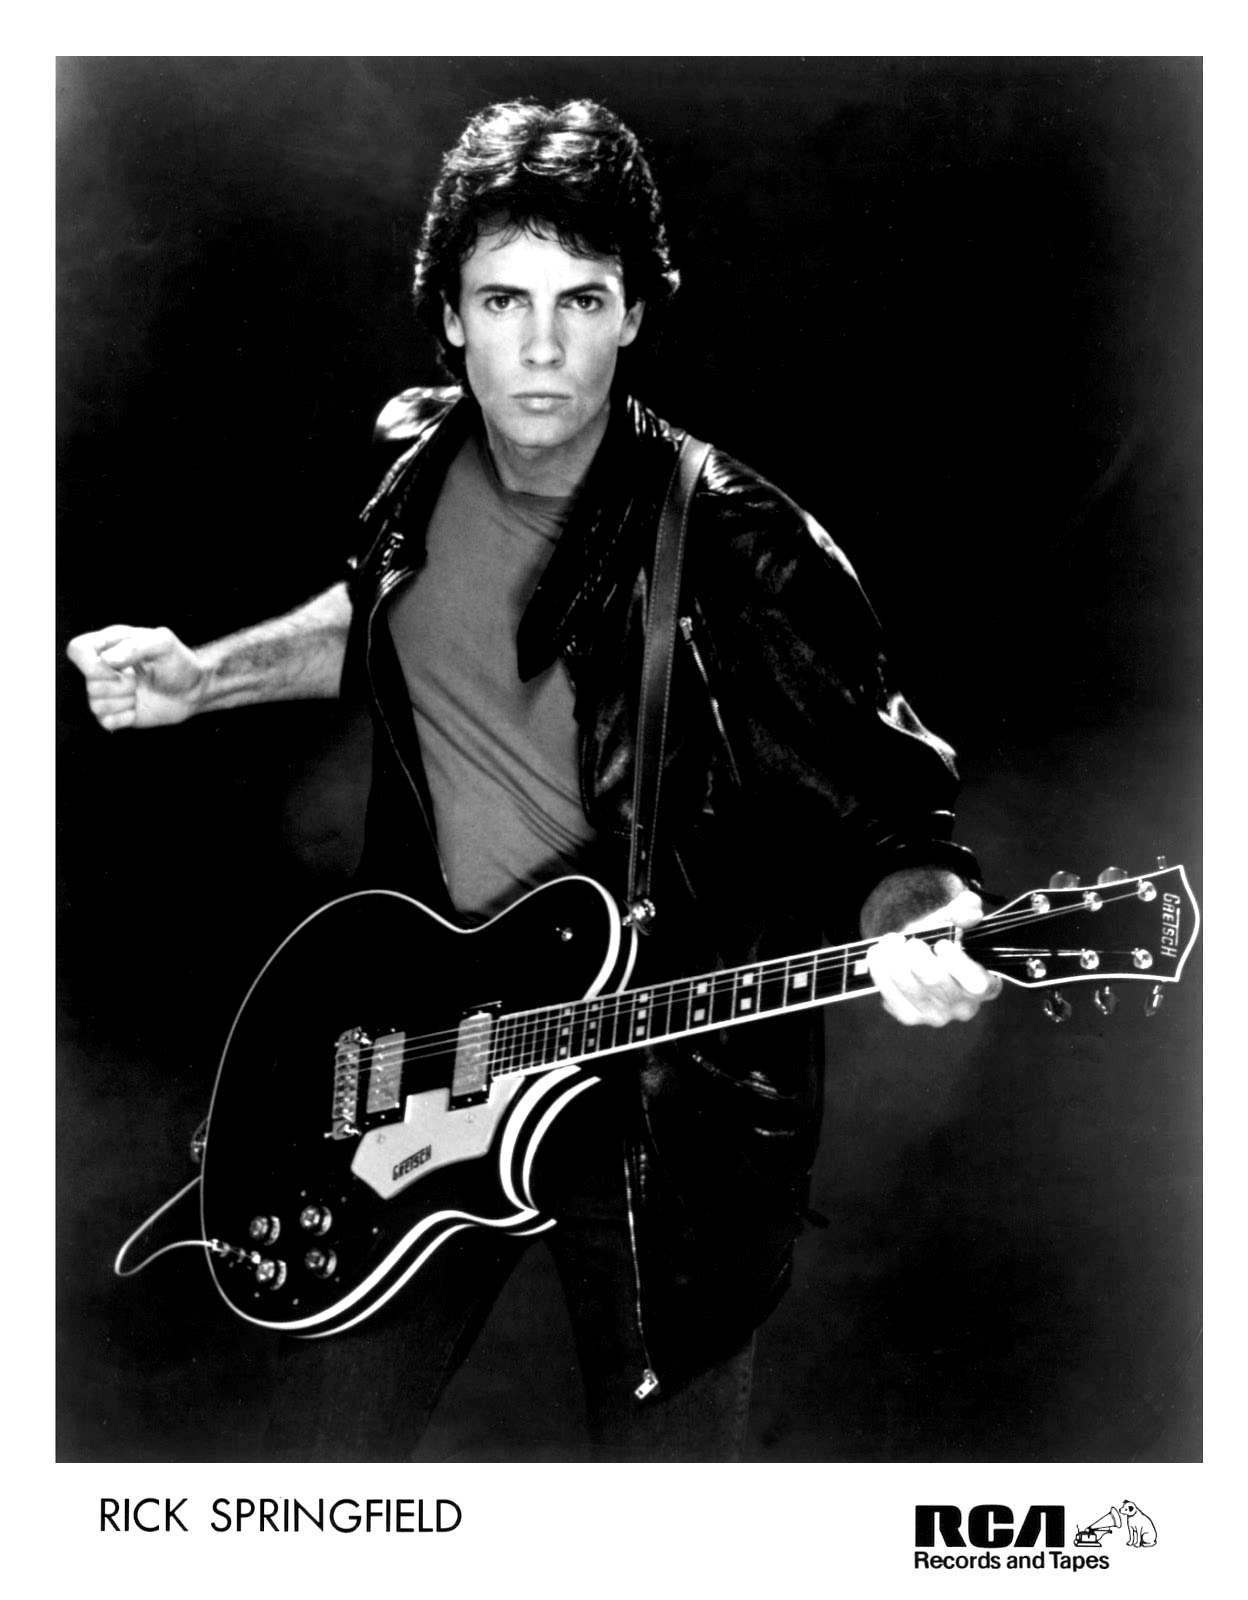 Rick Springfield Press Photo. RCA Records/USA (1982)